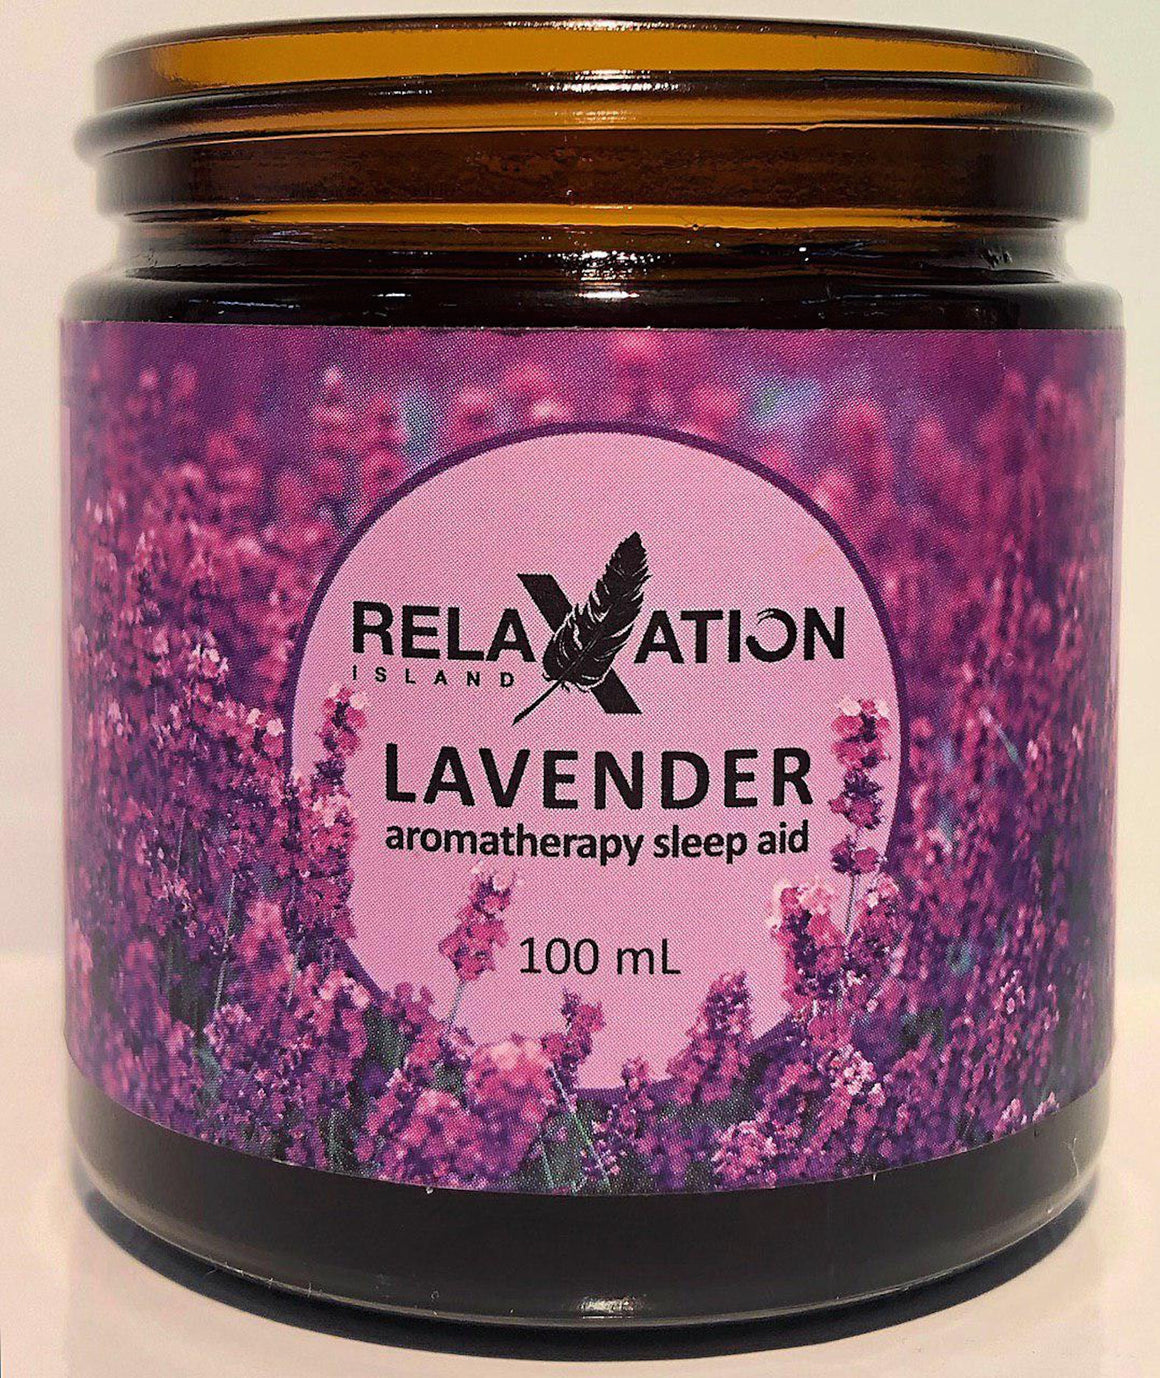 Lavender Oil Diffuser 100ml-Relaxation Island®